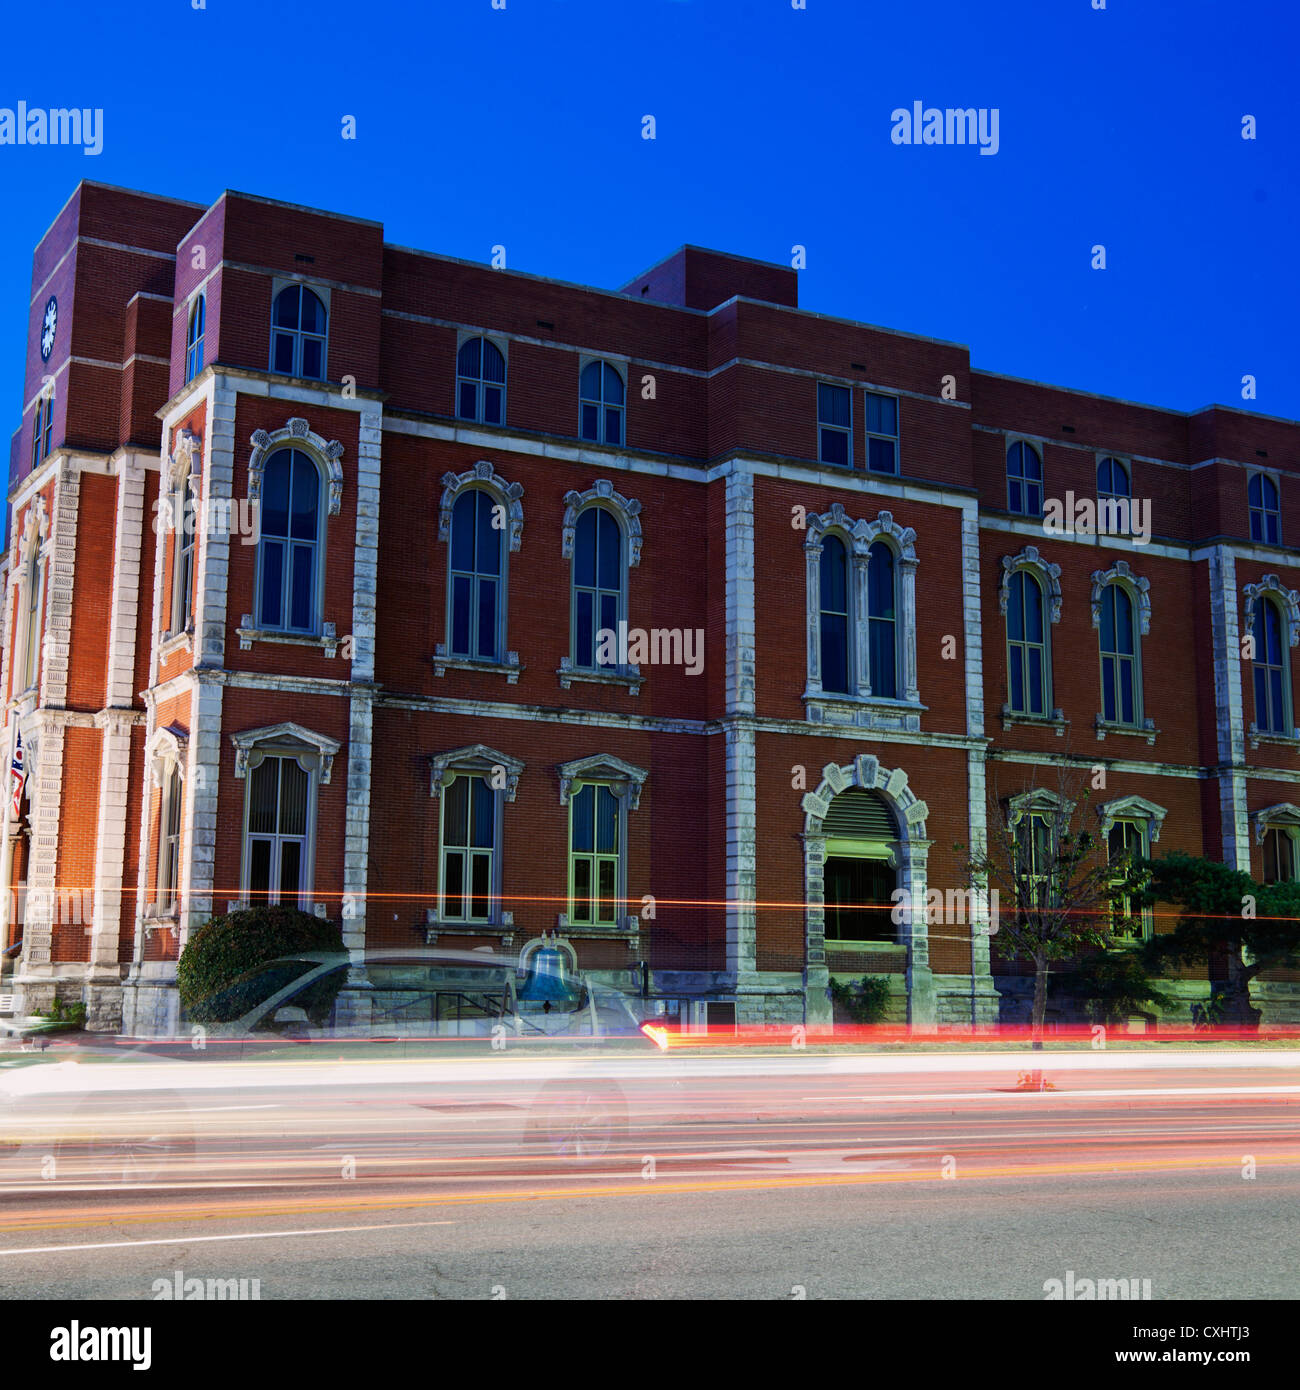 Old courthouse in the center of Defiance - Stock Image